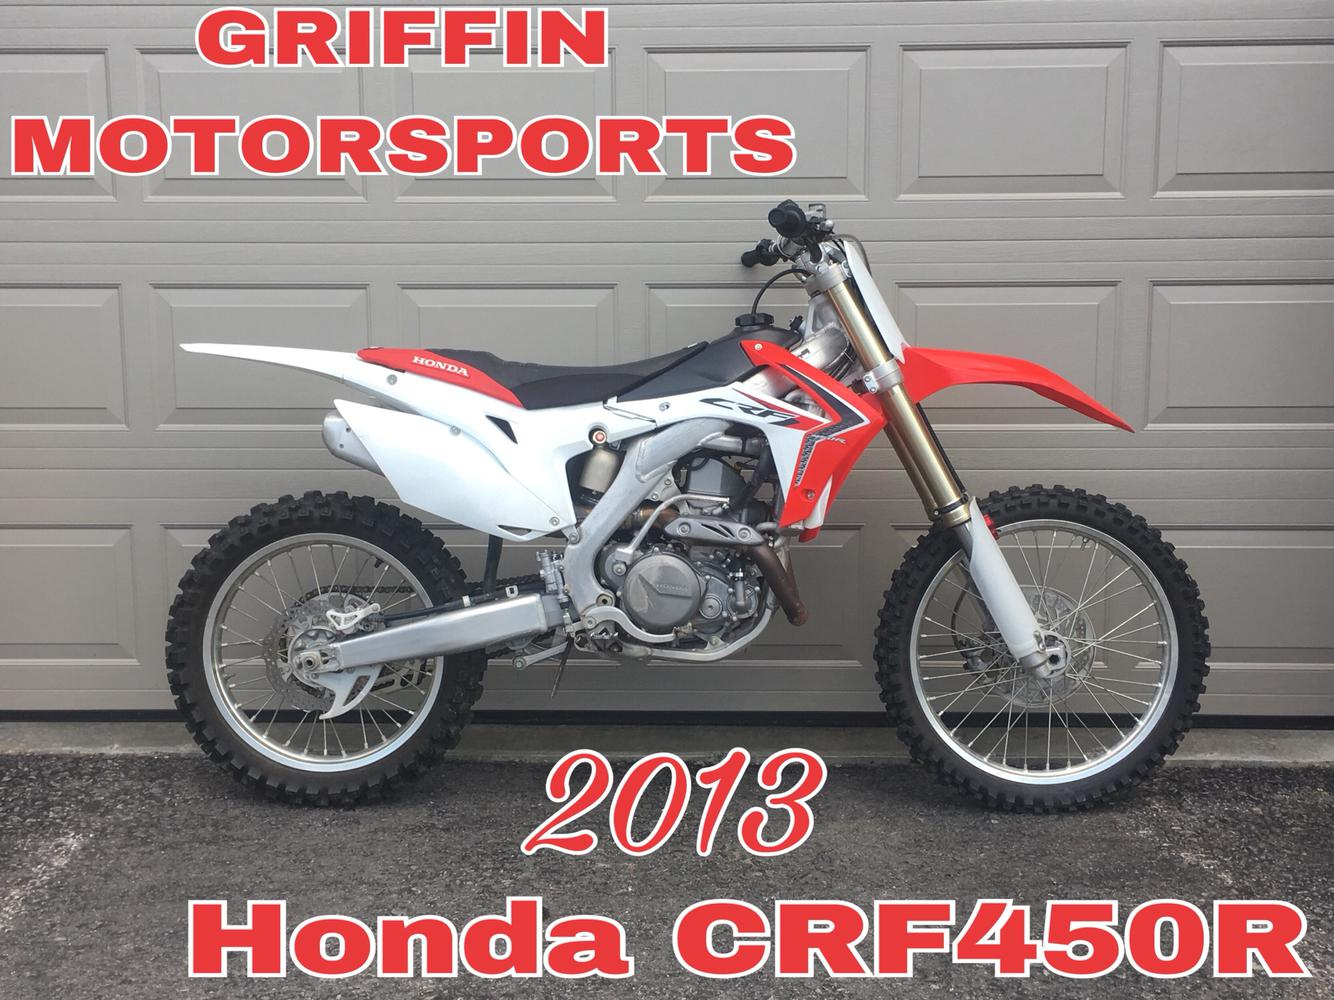 2013 Honda Crf450r For Sale In Schenectady Ny Griffin Motorsports